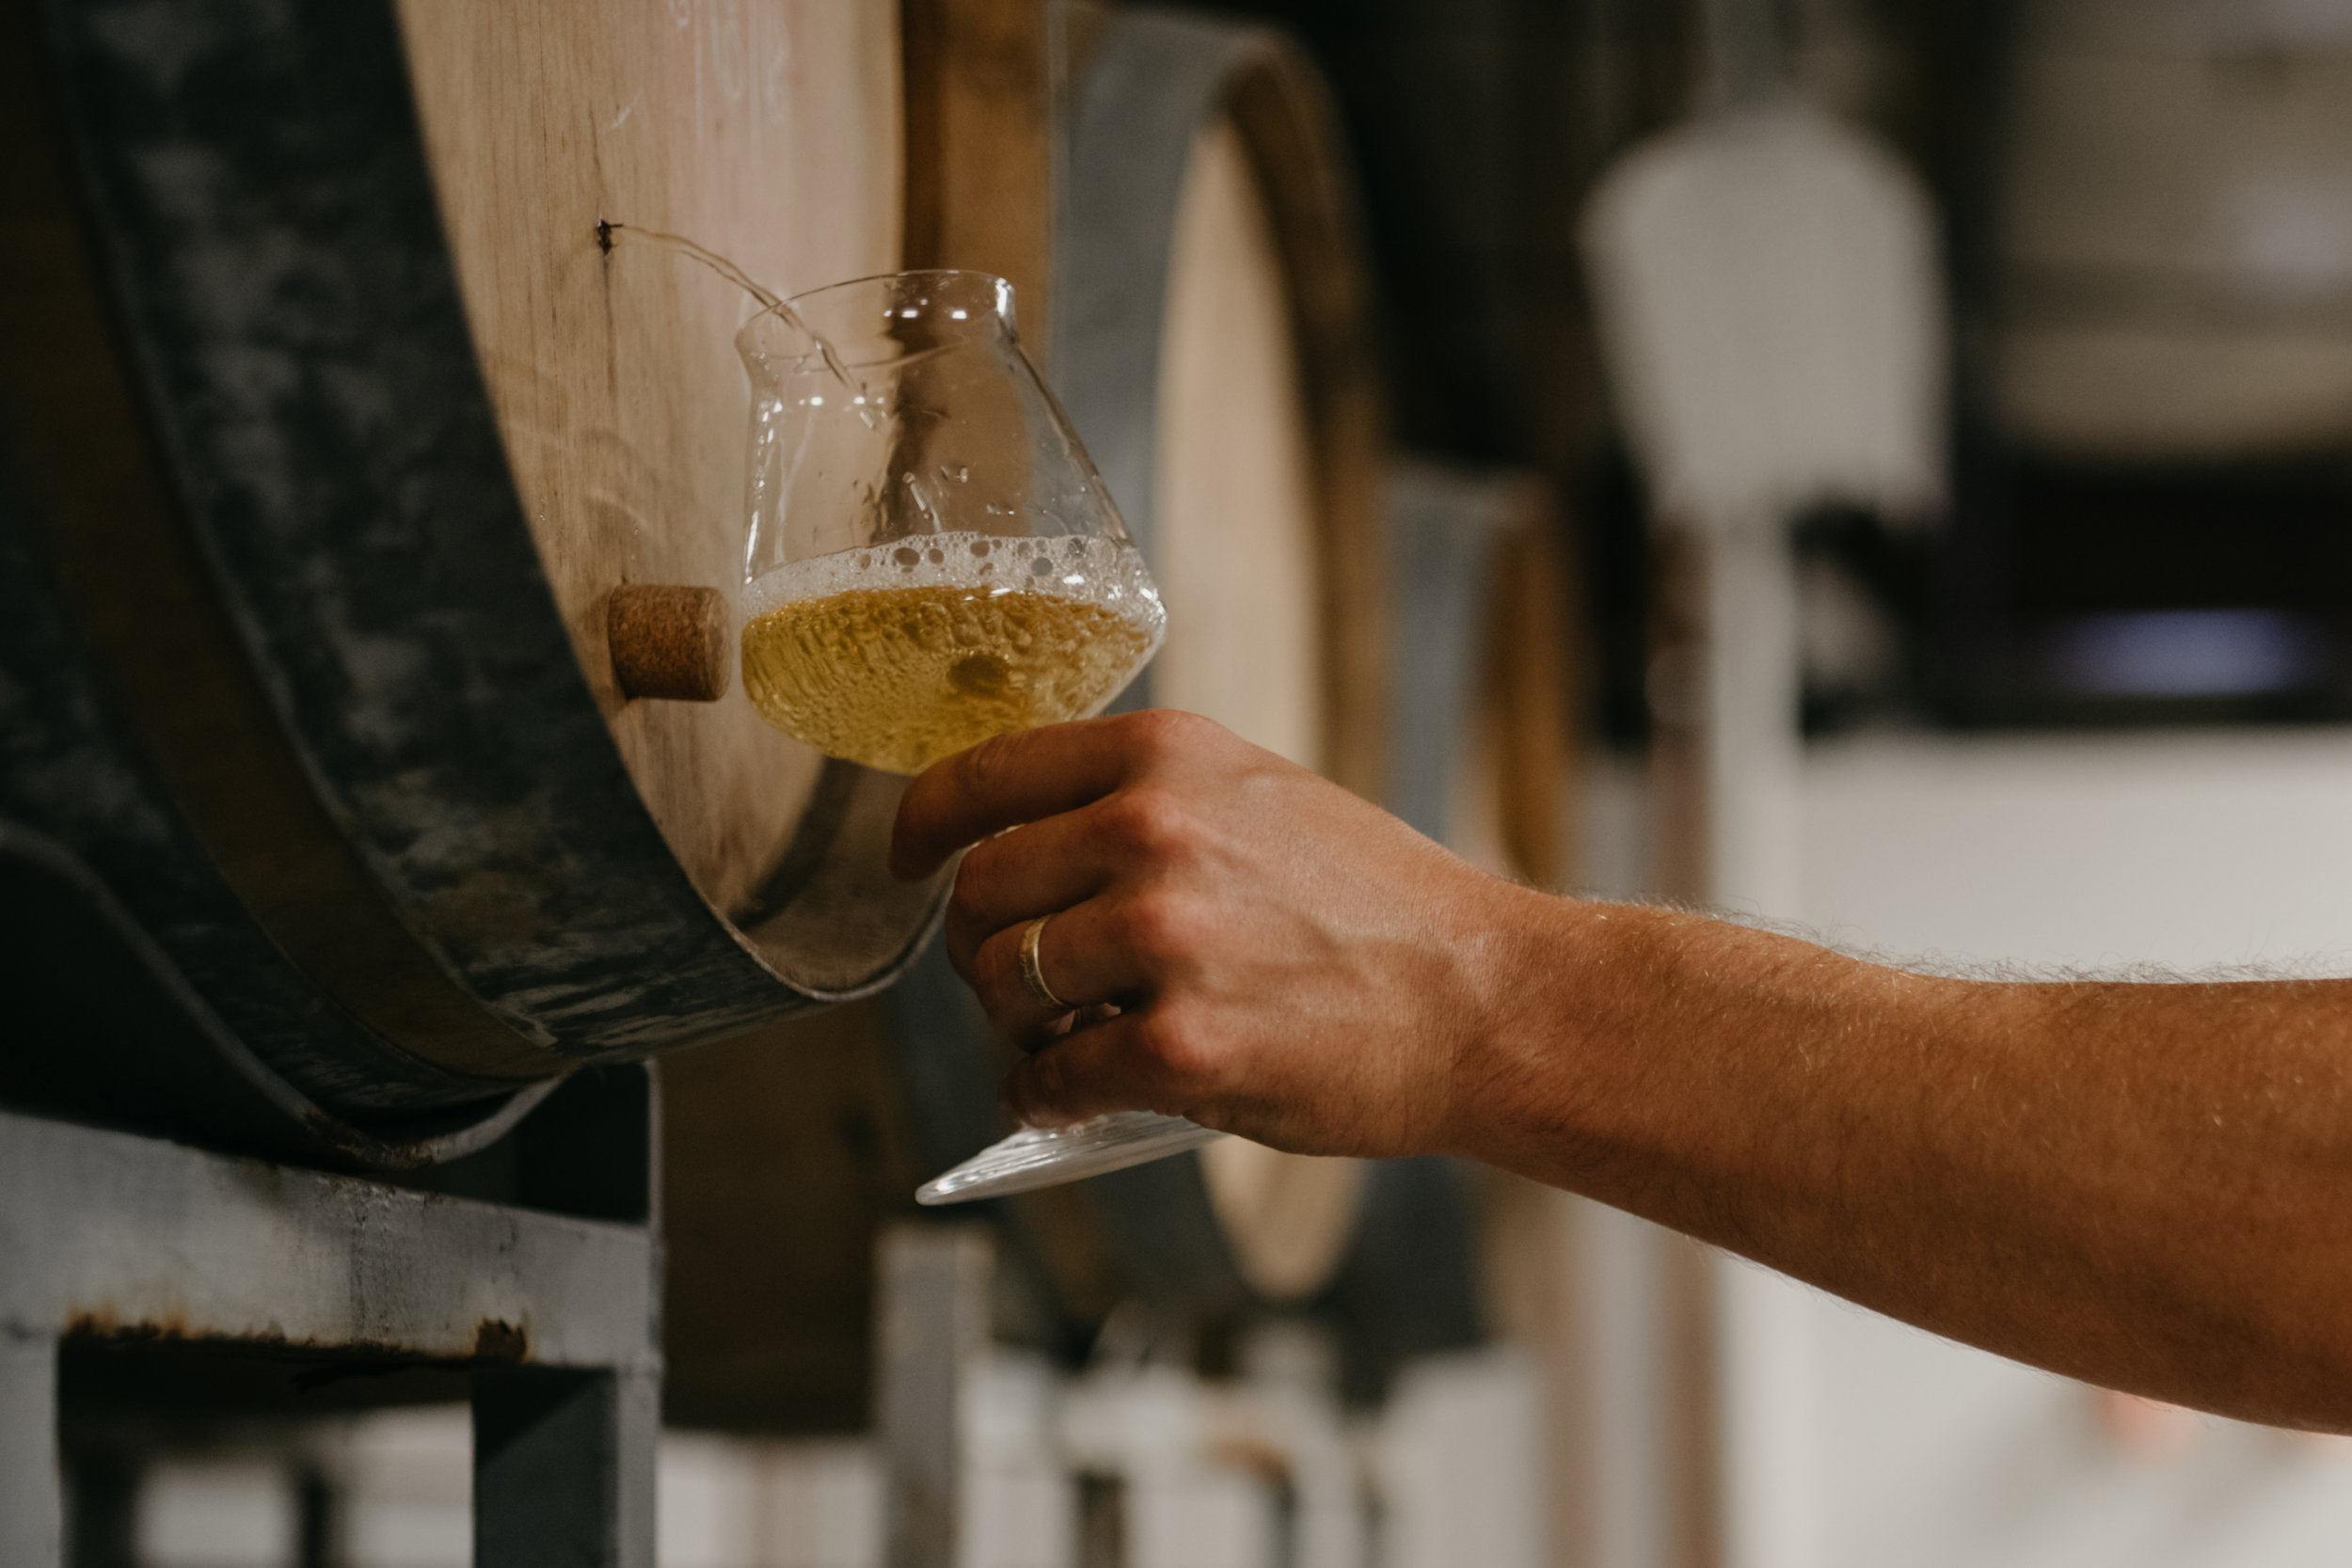 Valley Beer poured from the barrel